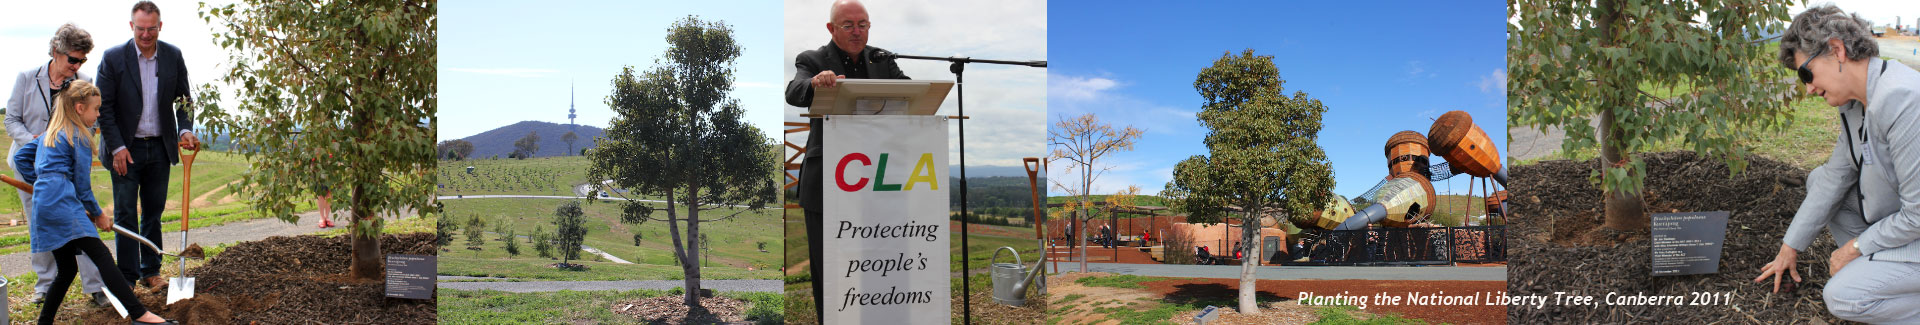 CLA policy:  Technology and civil liberties